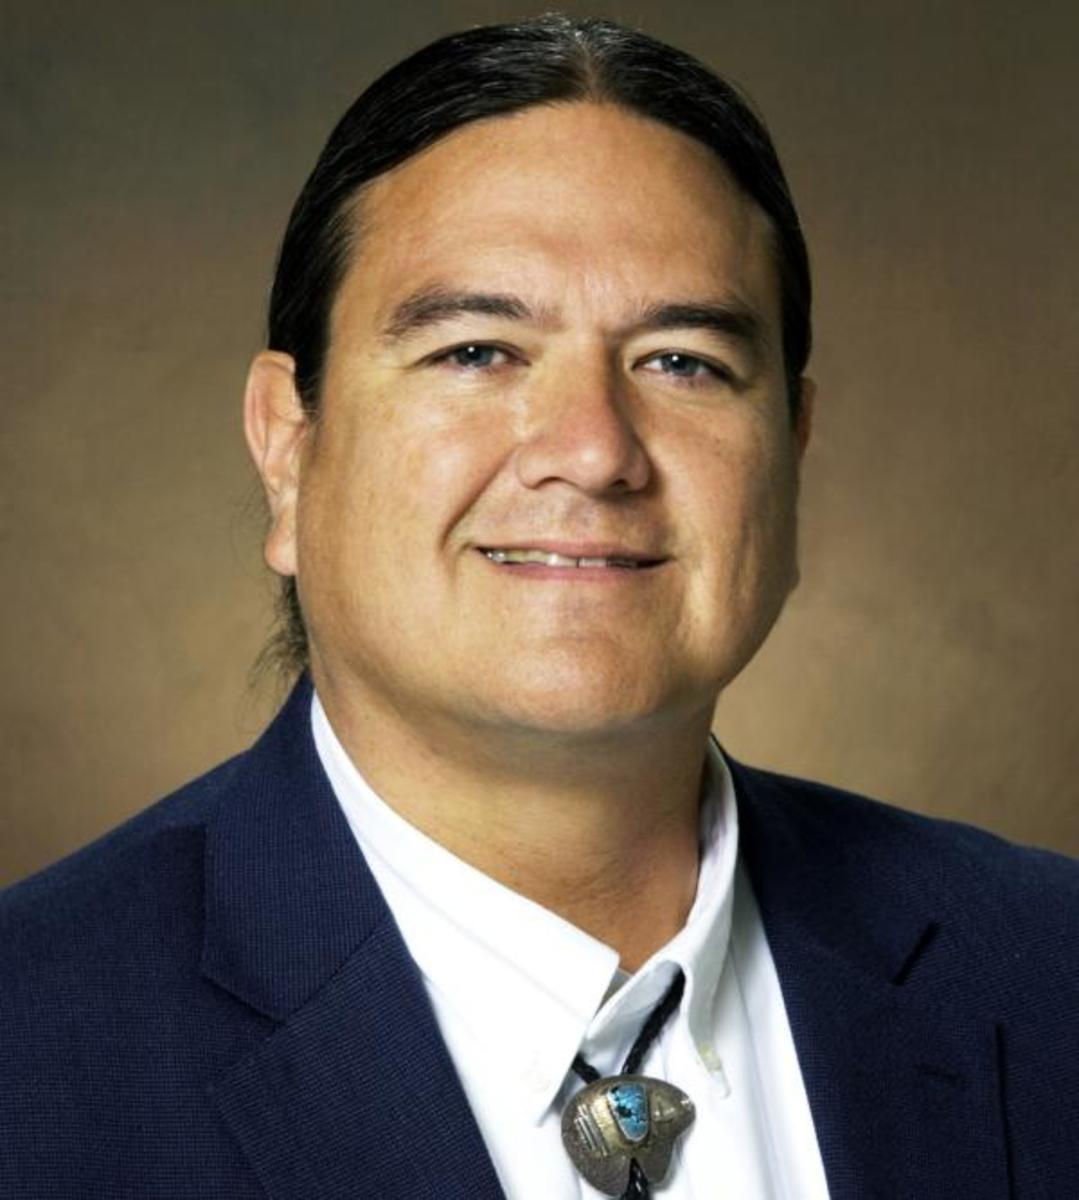 Dr. Donald Warne, Oglala Lakota, is one of three American Indians nominated by the National Indian Health Board and the National Congress of American Indians to serve as U.S. Surgeon General. (Courtesy North Dakota State University)